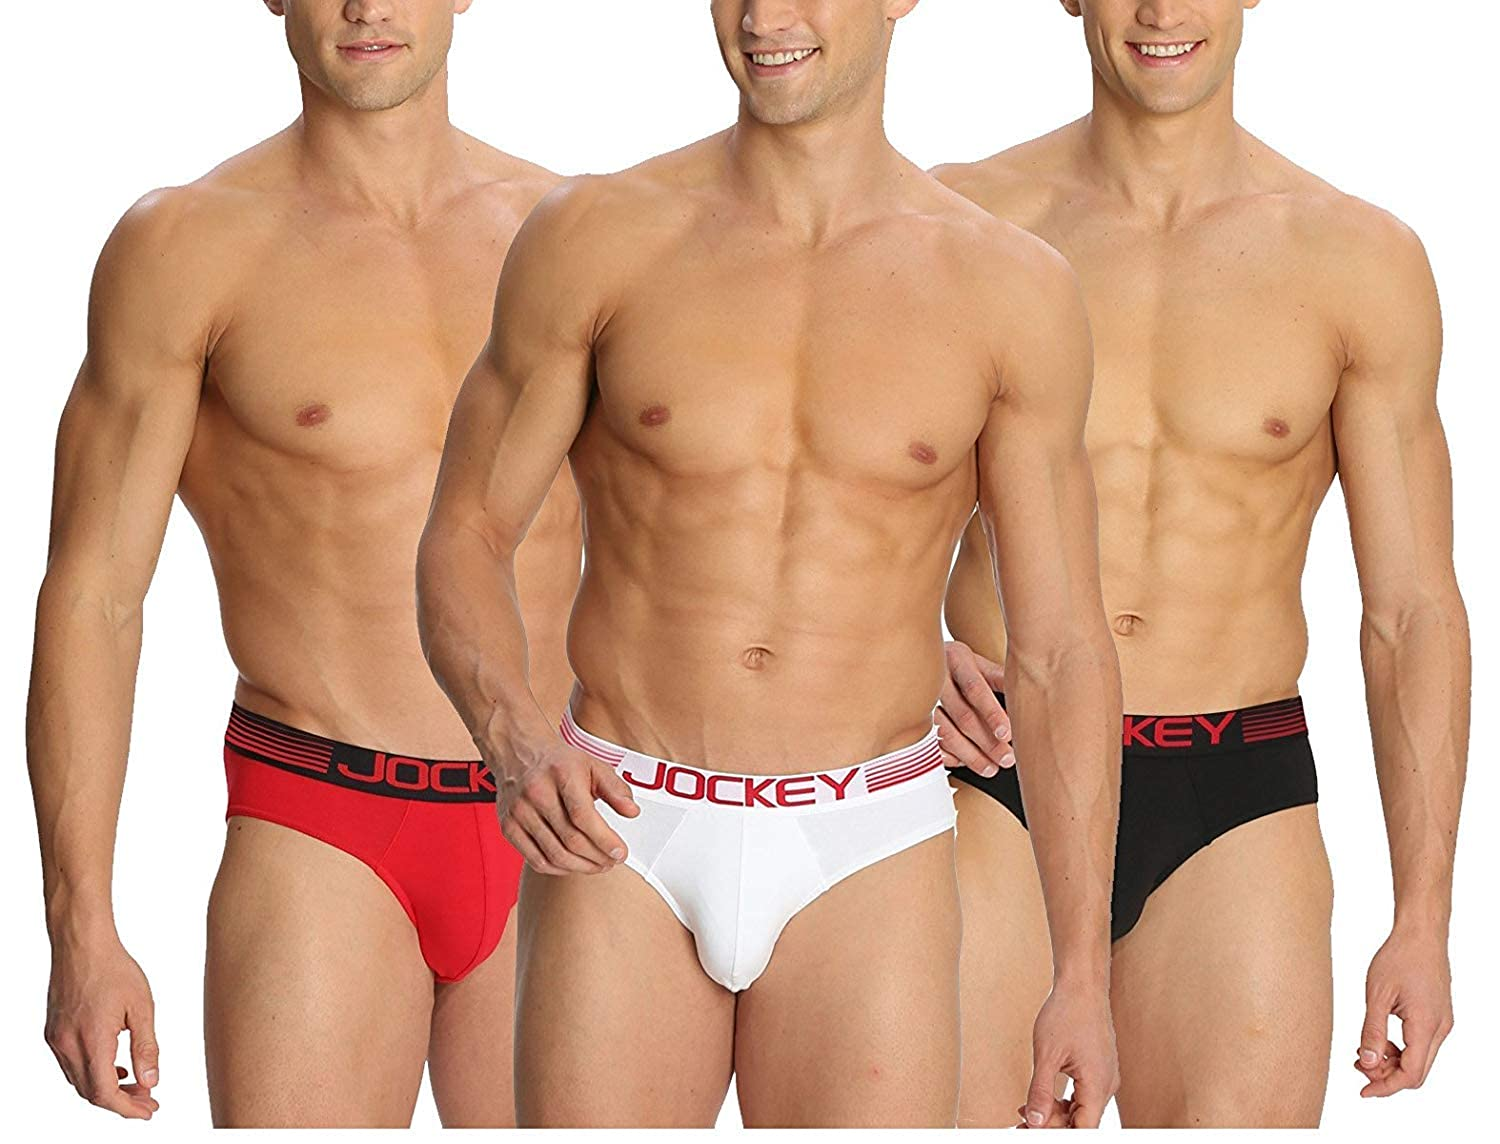 697cb437731c Jockey Zone Stretch Men's Bikini Briefs - Assorted Pack of 3 (Colors May  Vary) (Large): Amazon.in: Clothing & Accessories